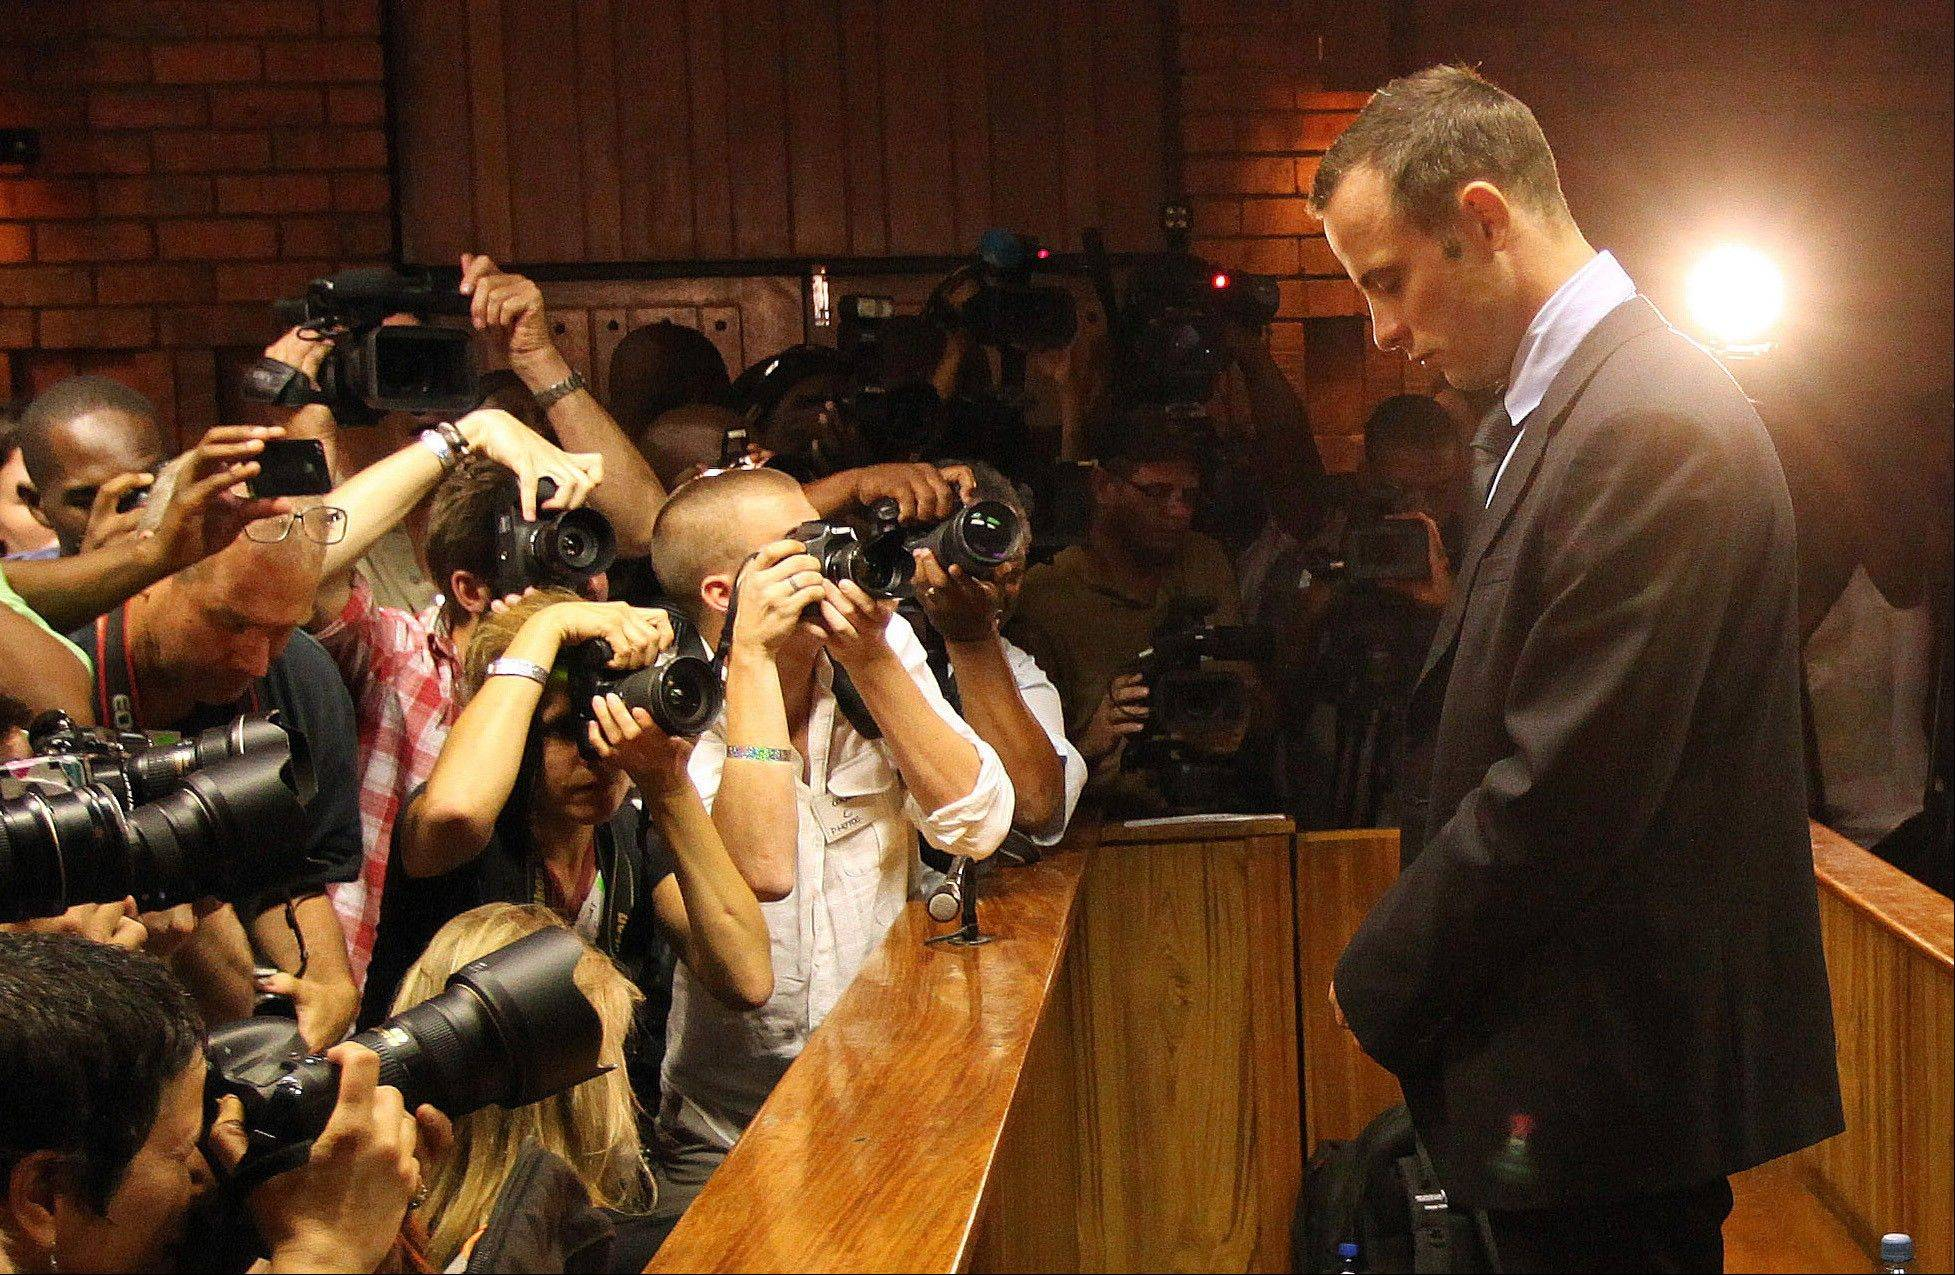 Photographers take photos of Olympic athlete Oscar Pistorius as he stands in the dock during his bail hearing at the magistrates court in Pretoria, South Africa.